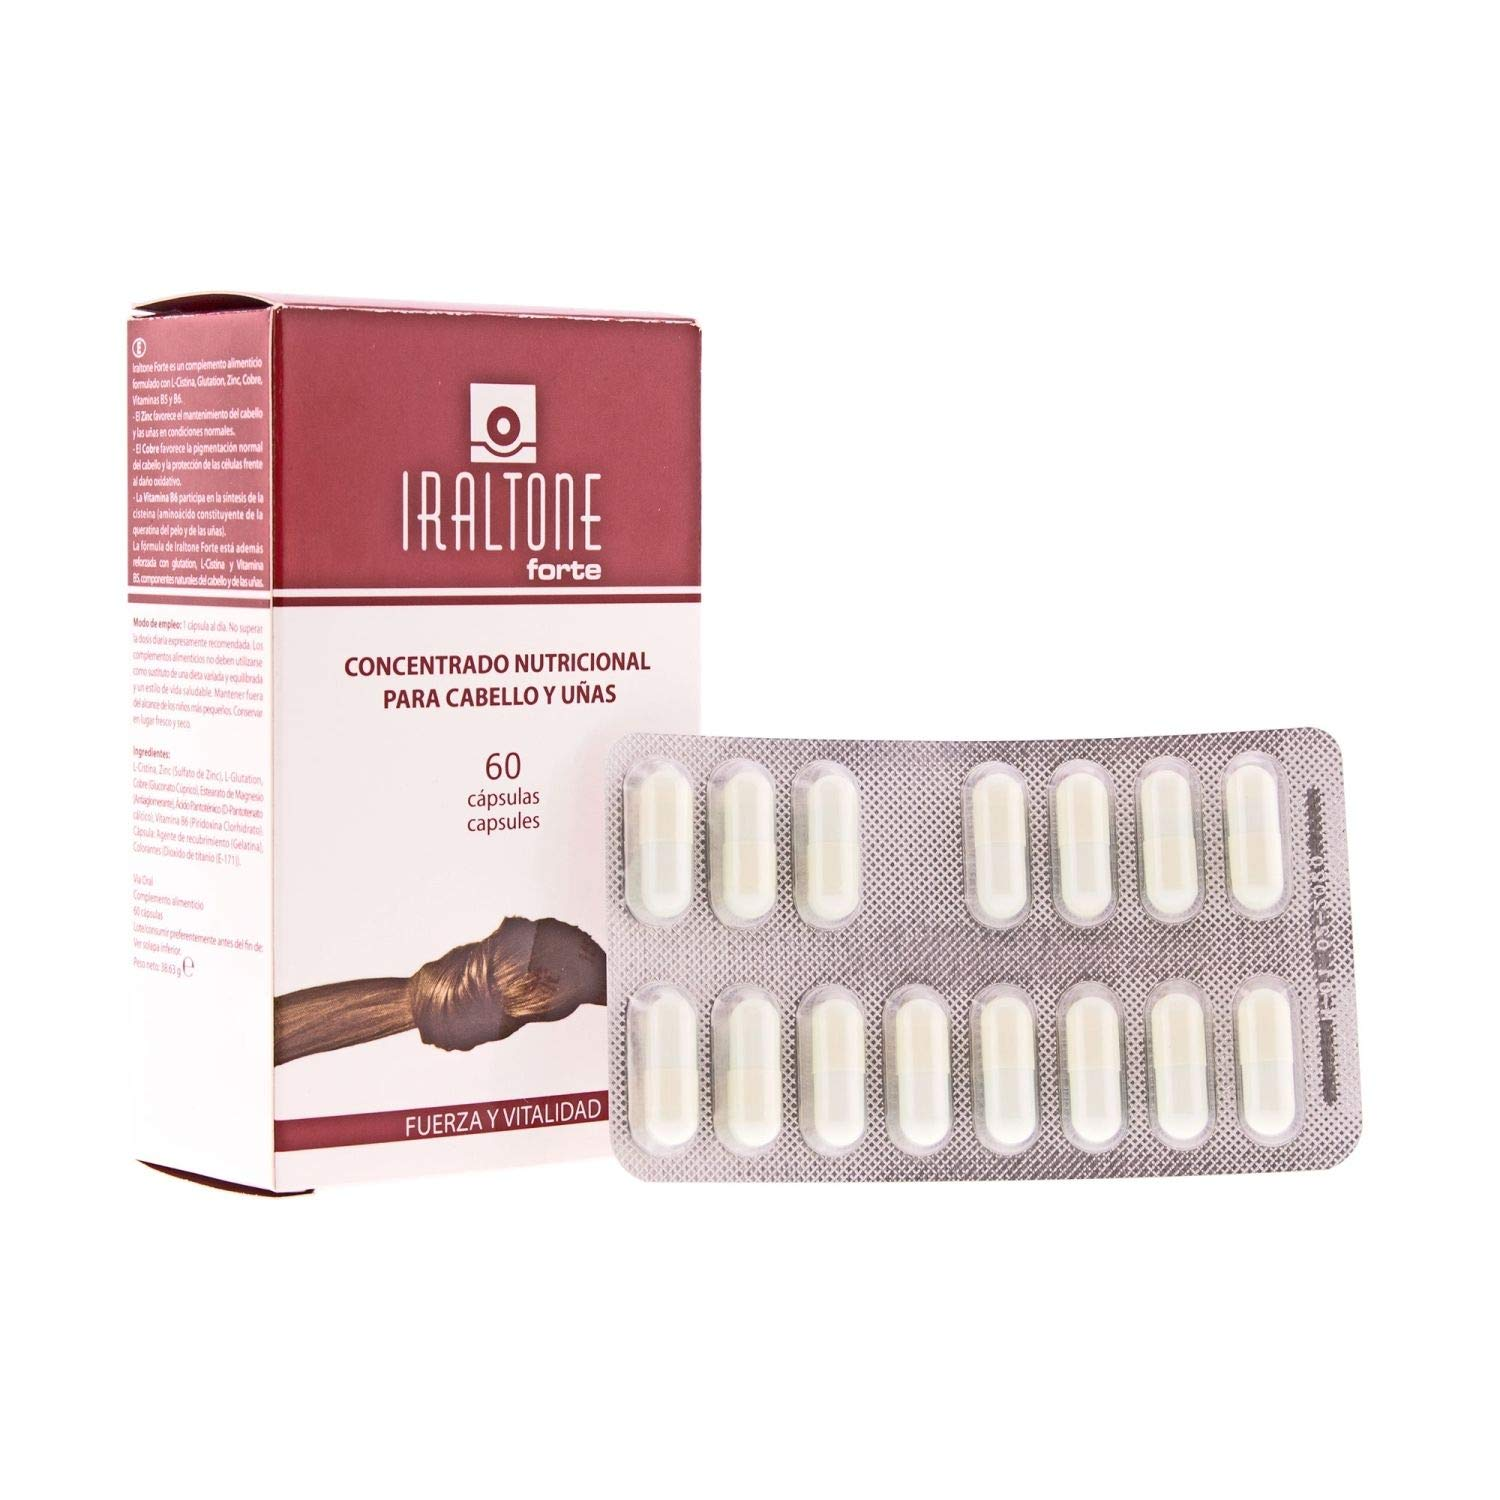 Amazon.com : Iraltone Forte 60 caps - Nutritional Complex for Hair and Nails - Hair Reinforcement - Hair Care - Nail Care : Beauty